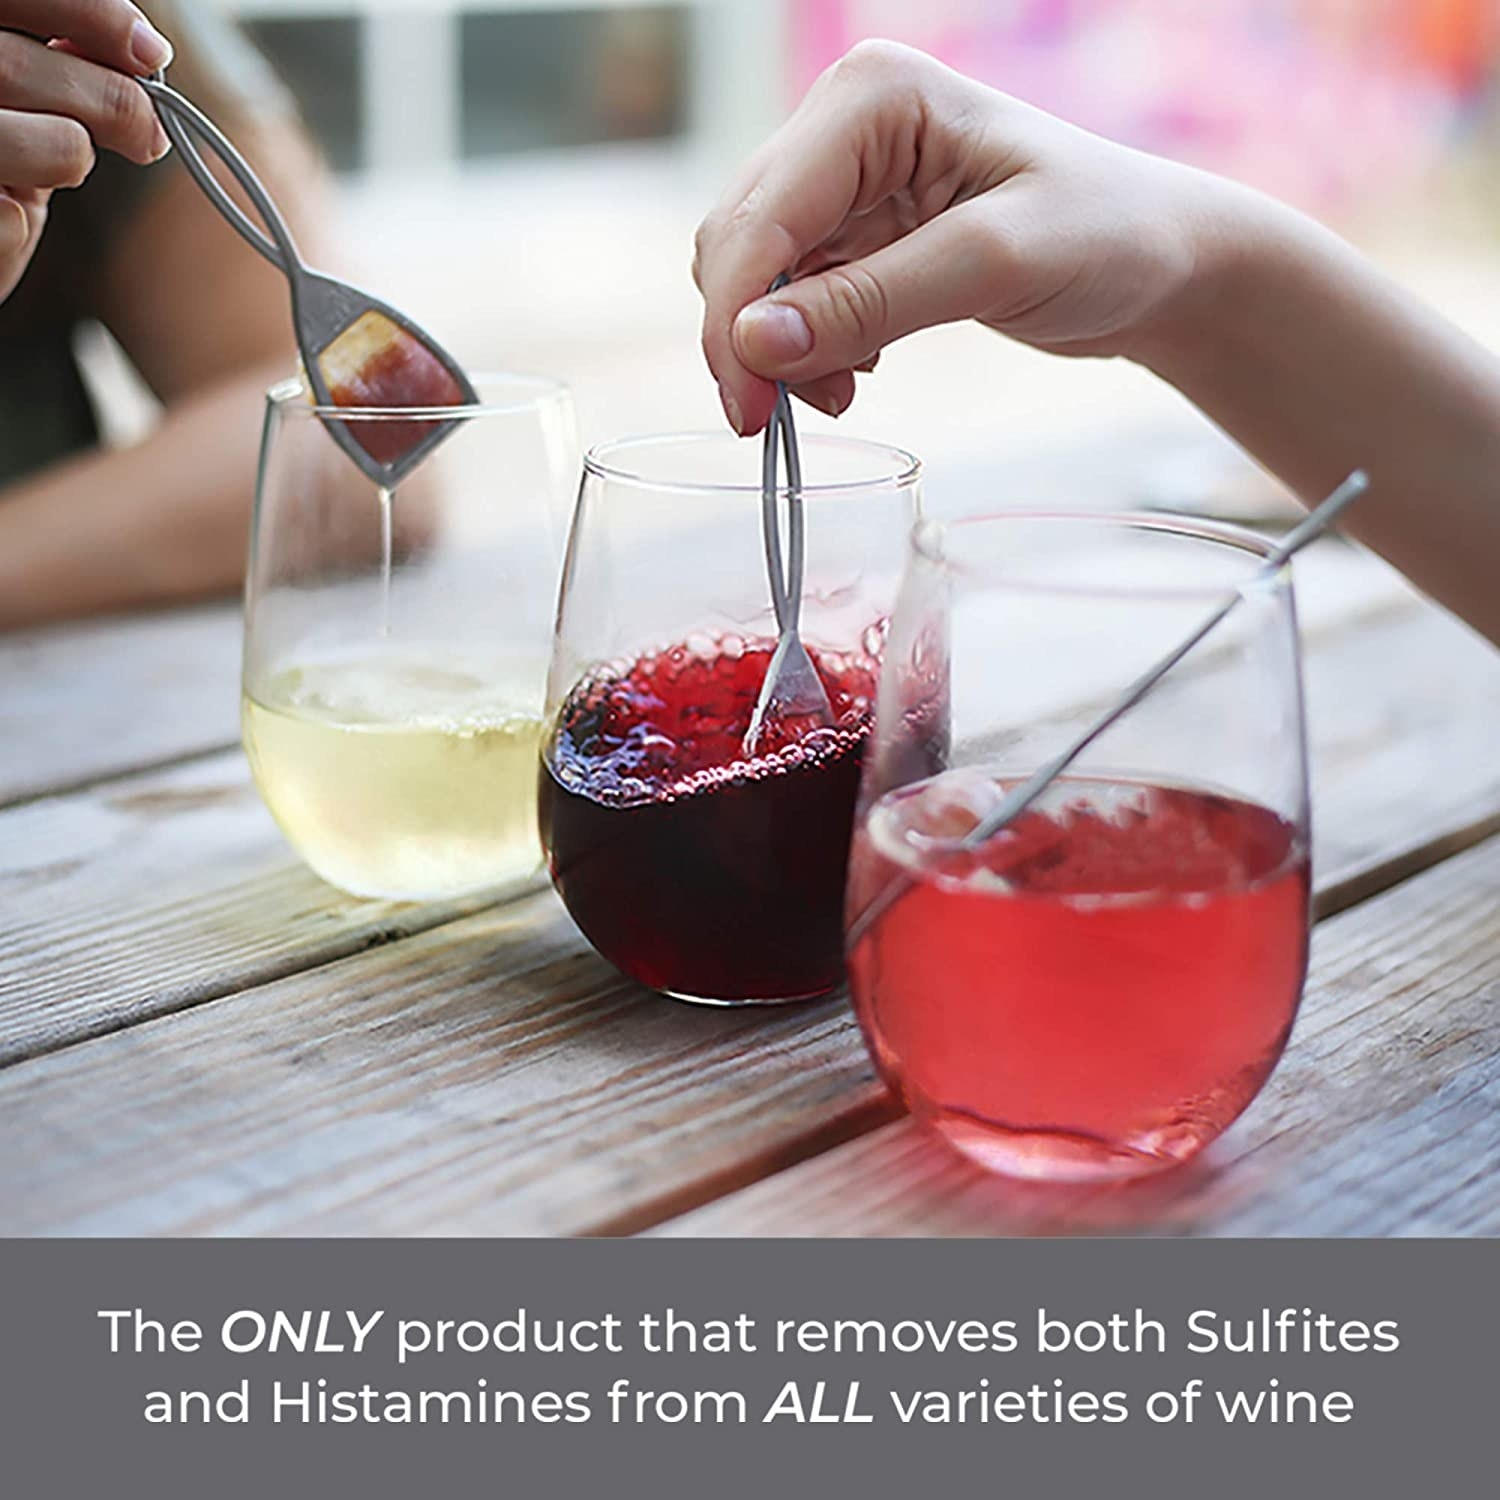 people using handheld wands to swirl in wine glasses